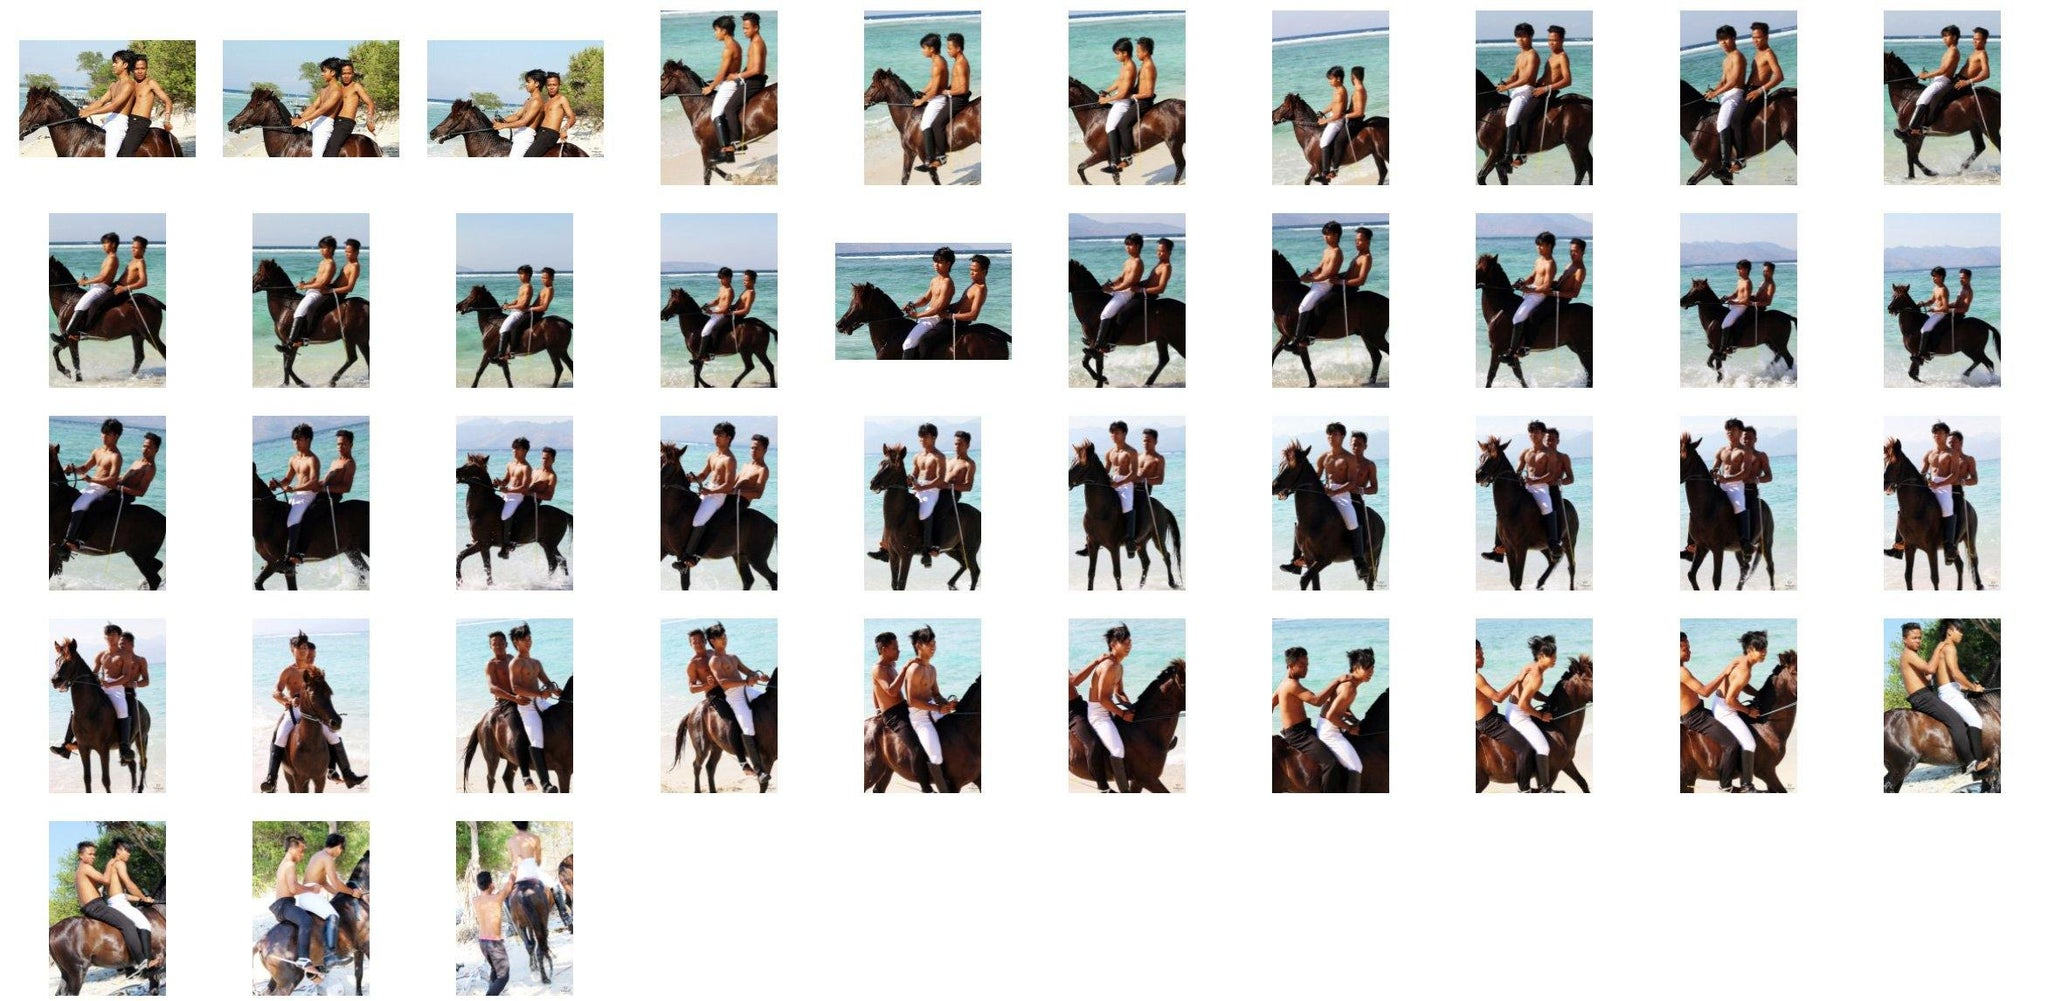 Intan and Emas in Jodhpurs and Ridingboots Bareback Double Riding on Brown Horse - Riding.Vision